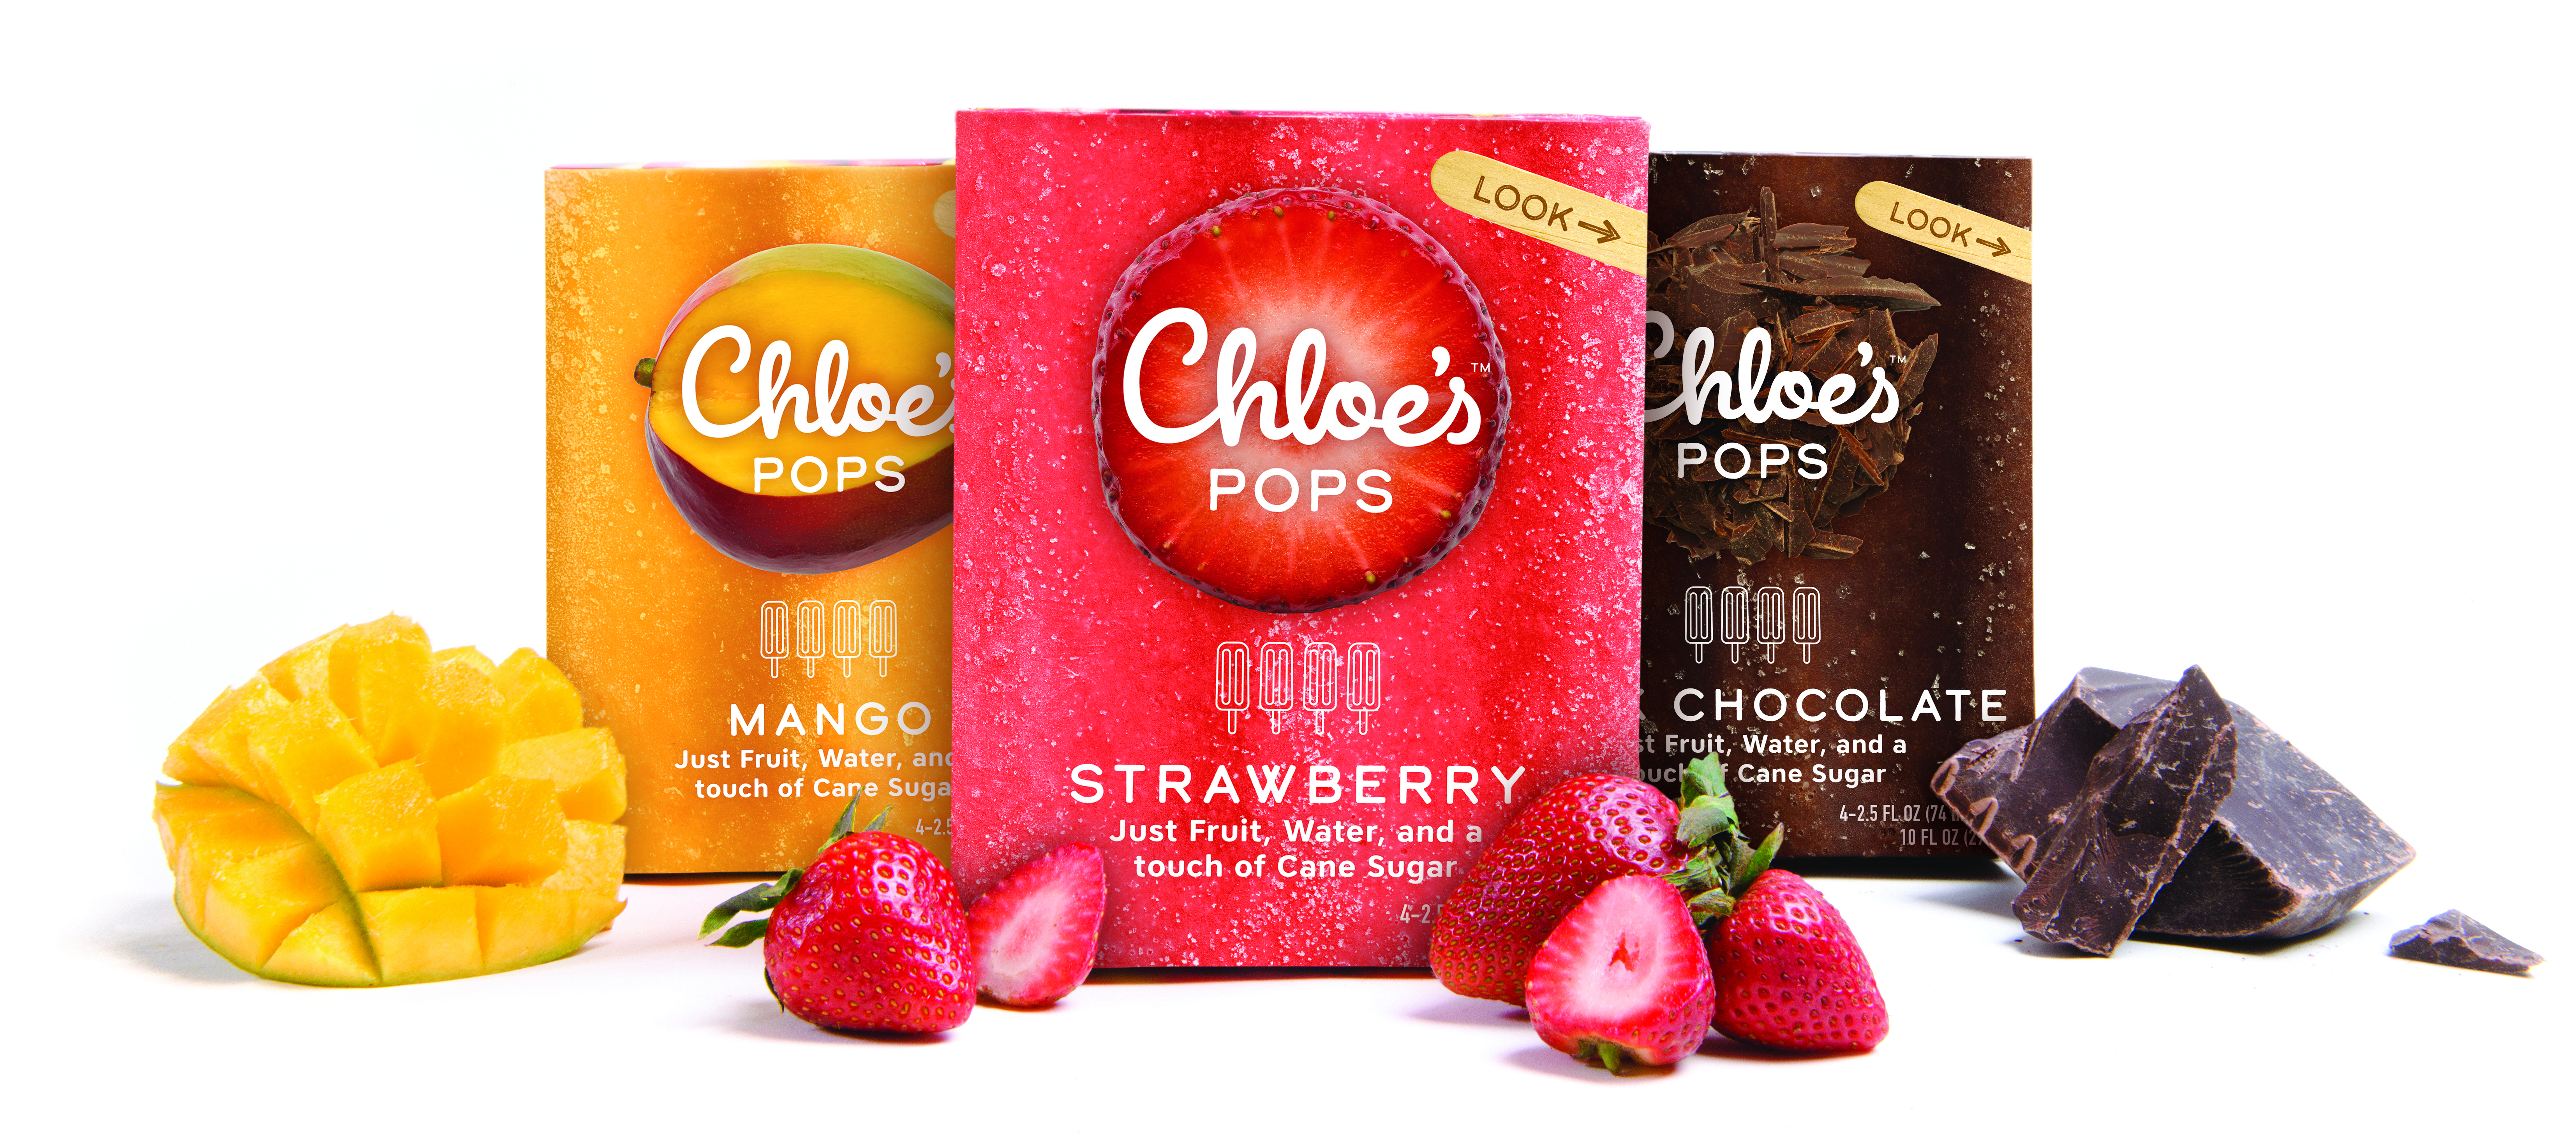 Chloe's Pops boxes in mango, strawberry and dark chocolate flavors